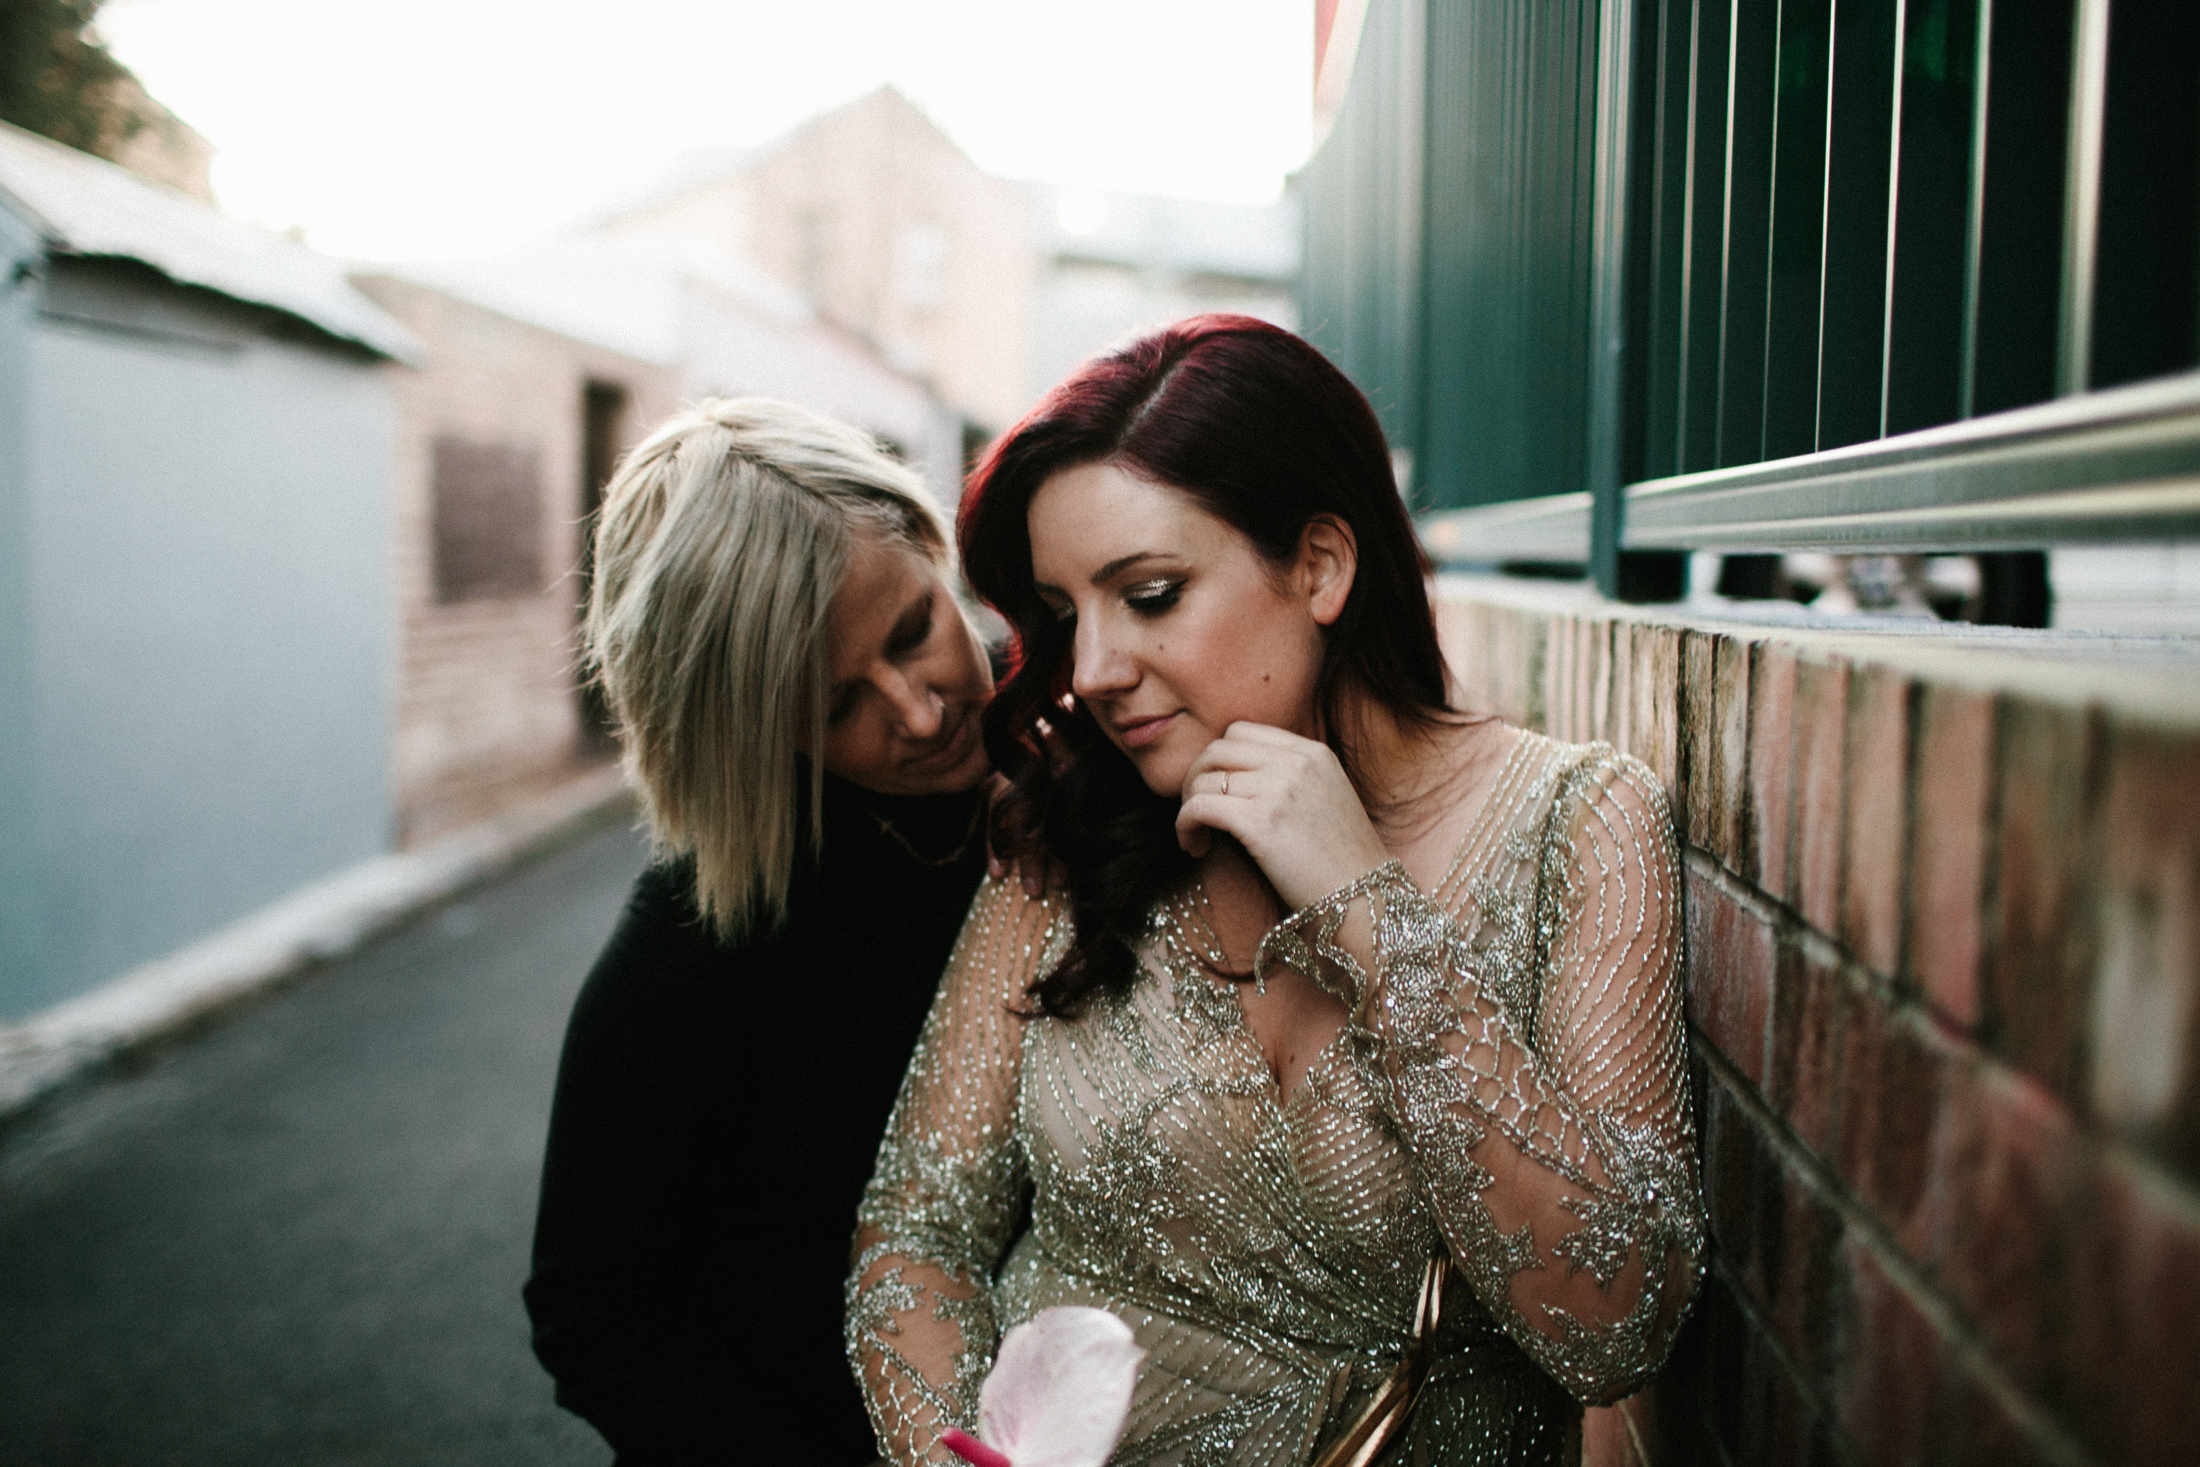 Lara Hotz & Wife Cass - Photography by BearDeerFox